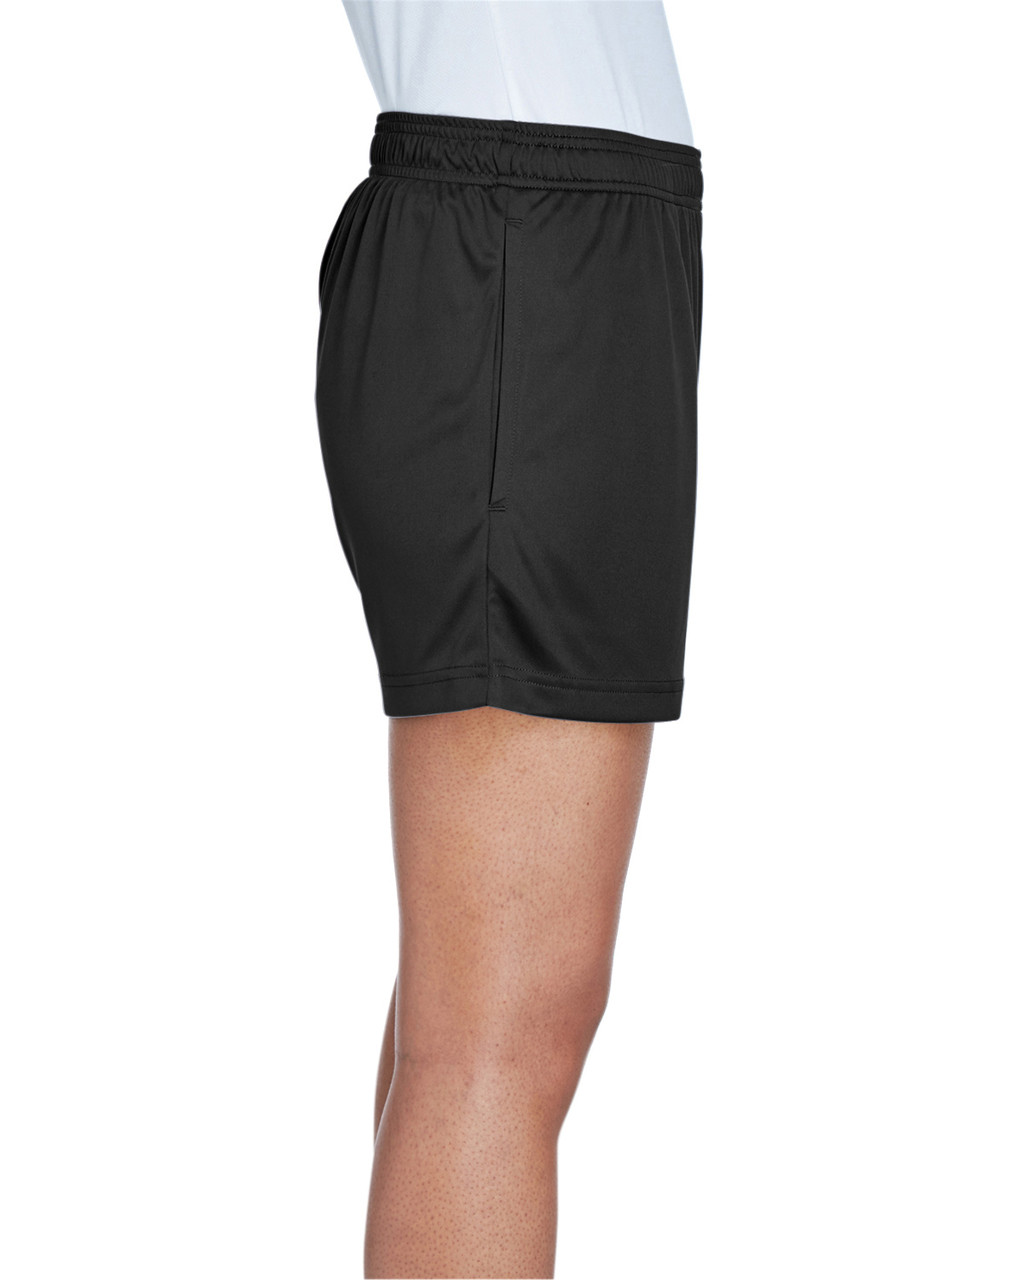 Black - Side, TT11SHW Team 365 Ladies' Zone Performance Short | T-shirt.ca